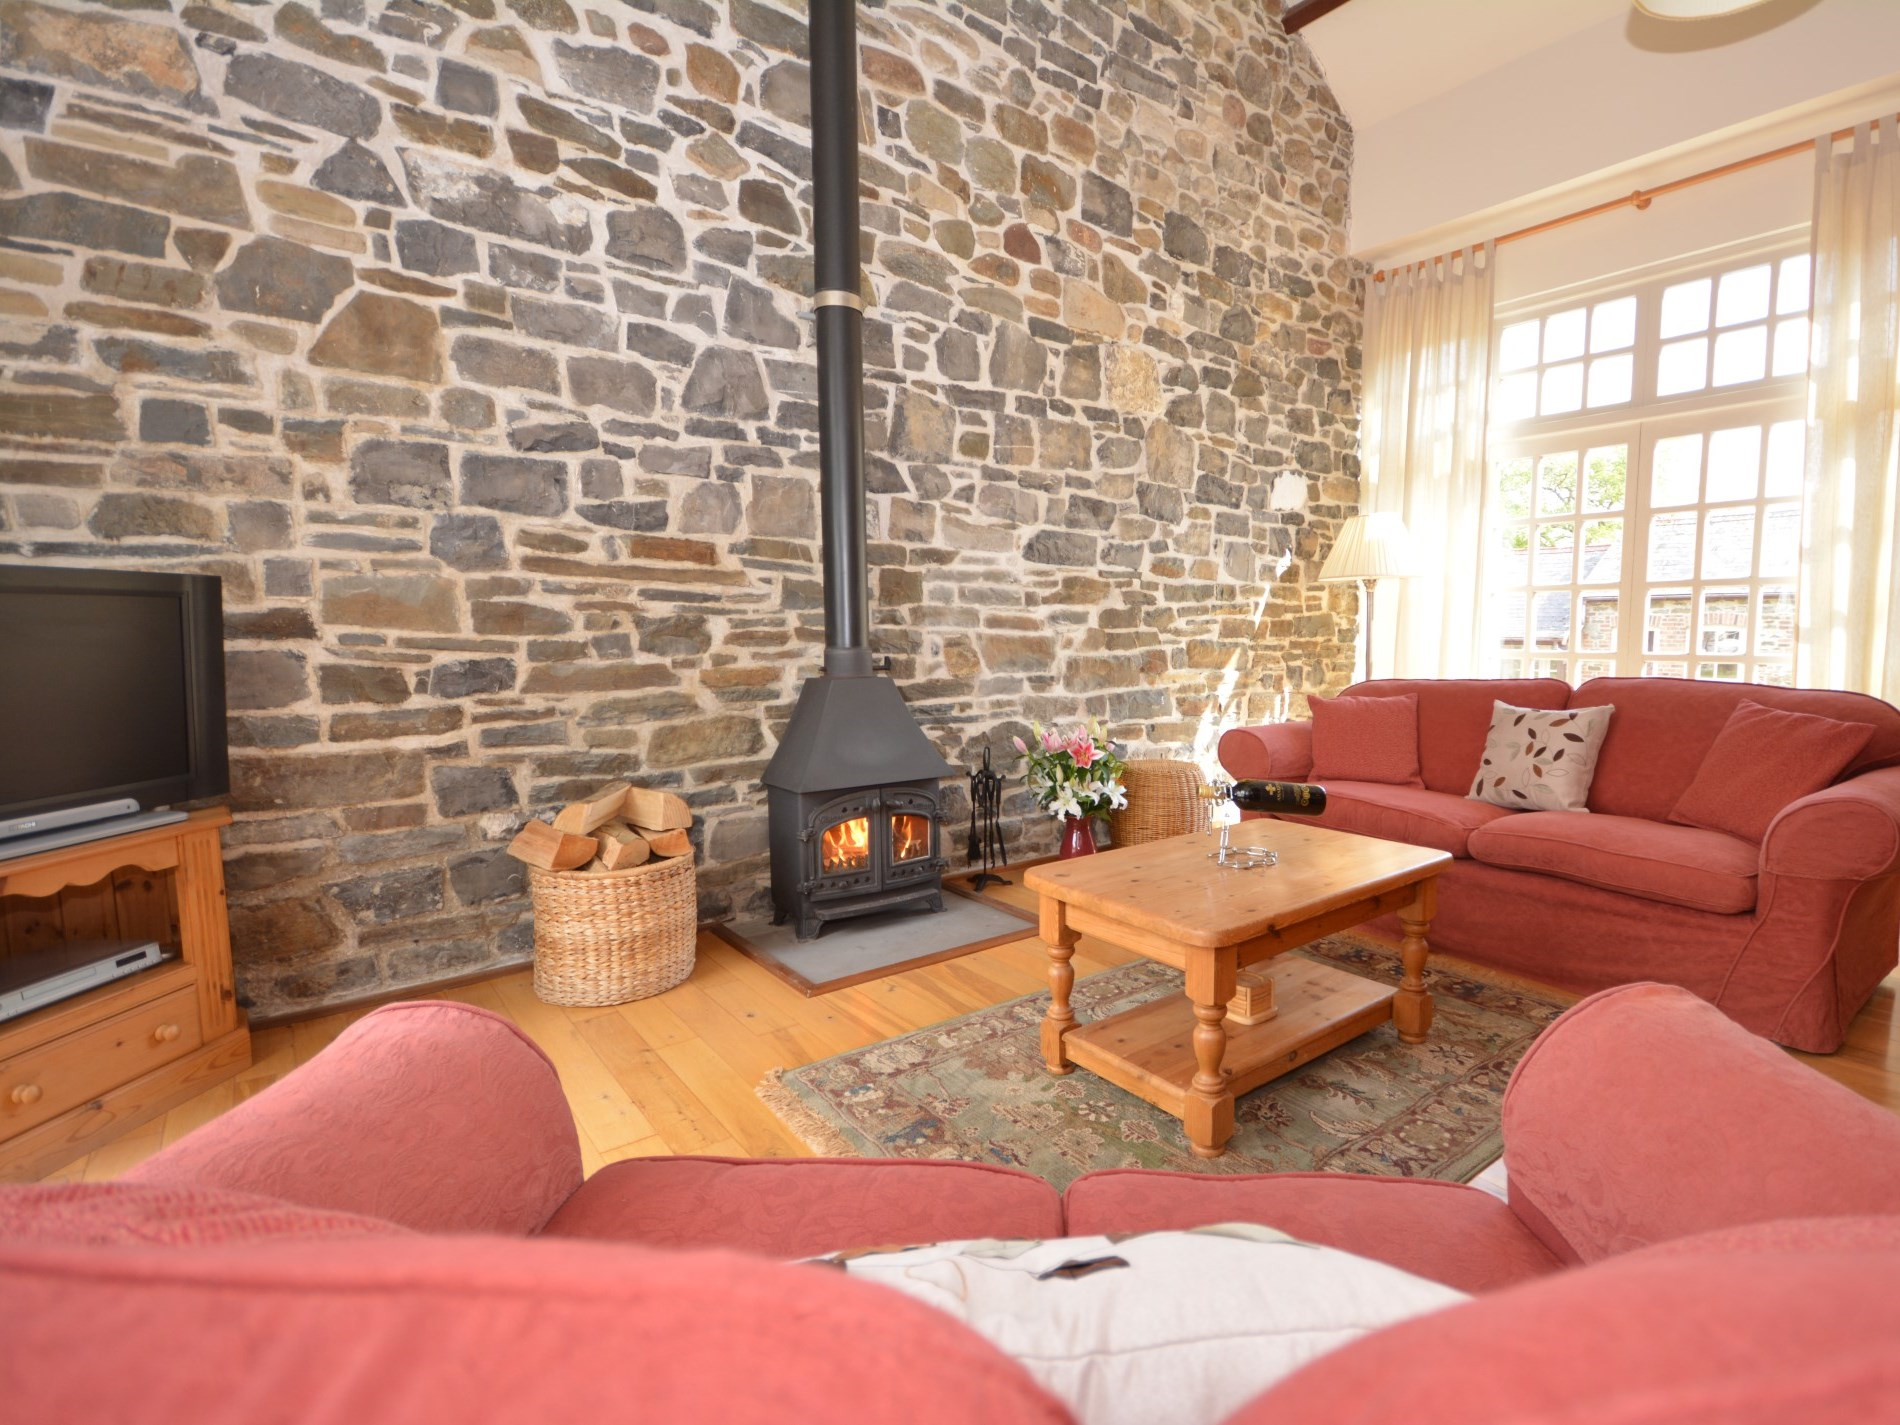 1 Bedroom Cottage in Carmarthen, Mid Wales